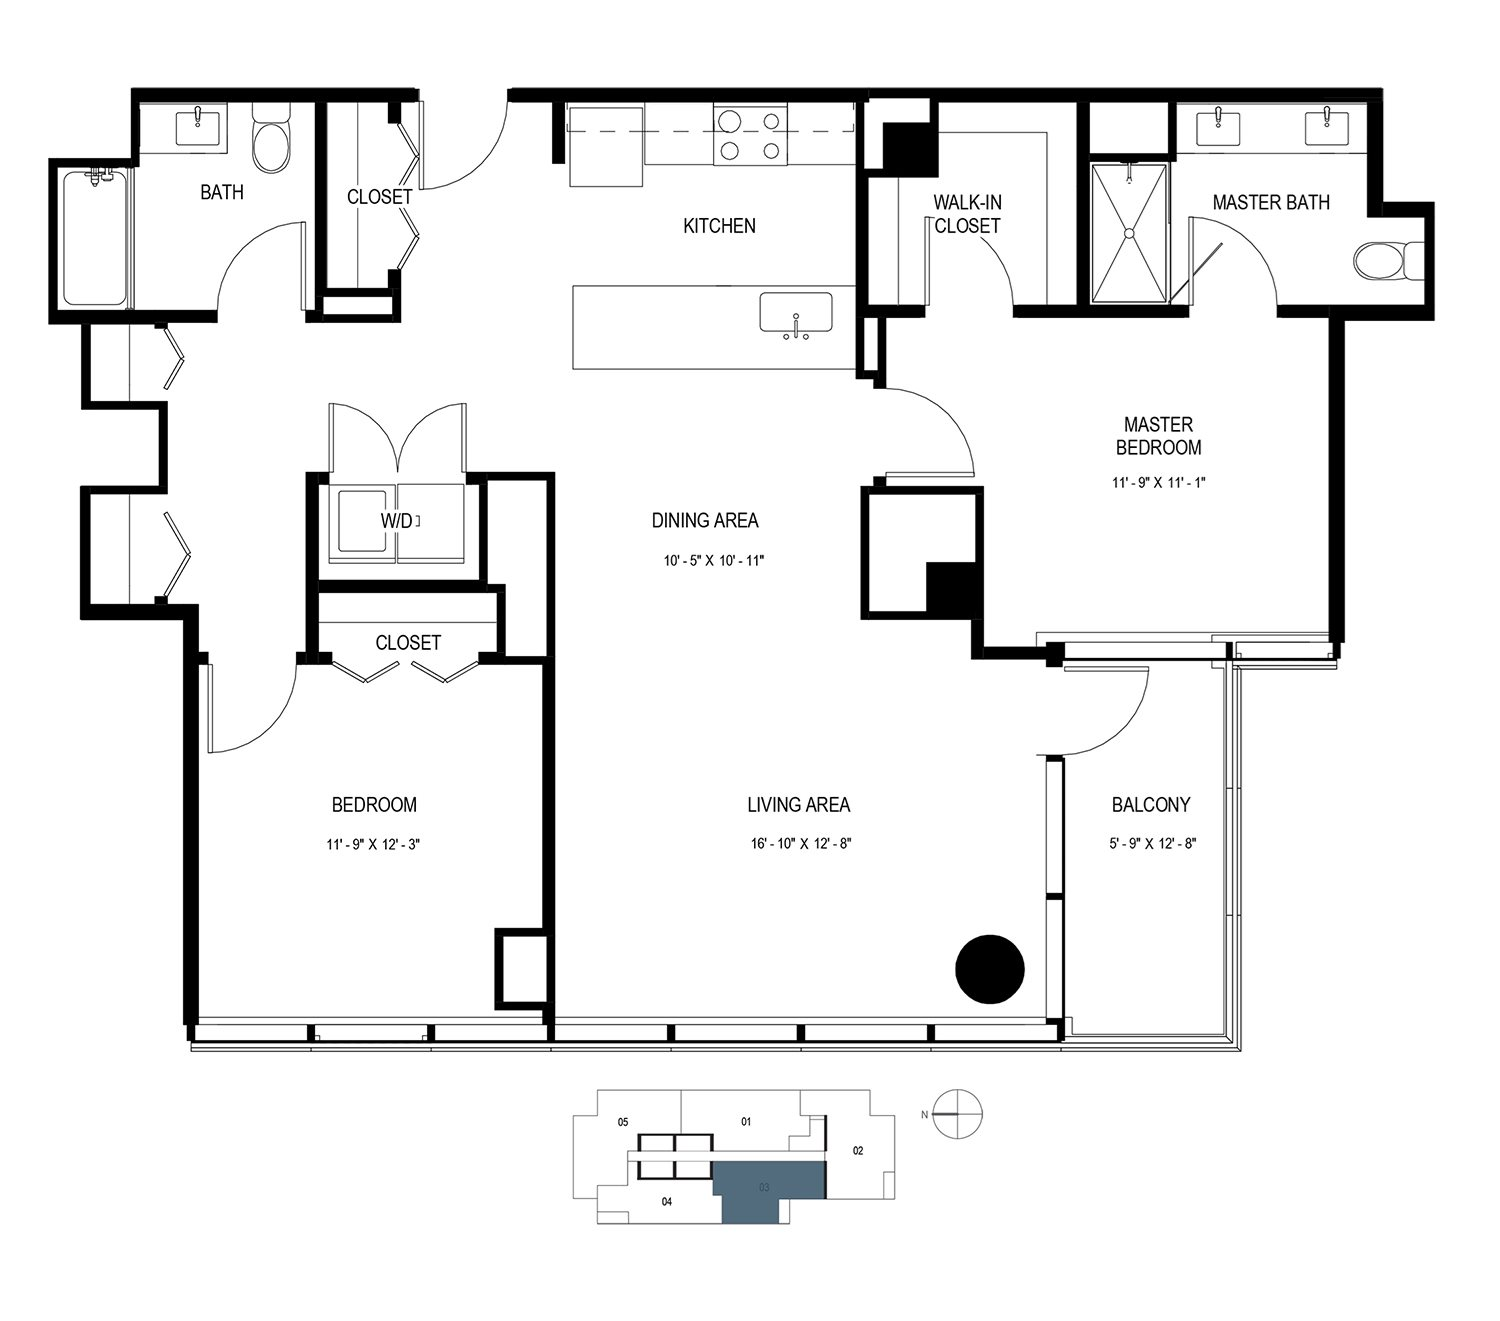 Two Bedroom Penthouse (1258 sf) Floor Plan 20